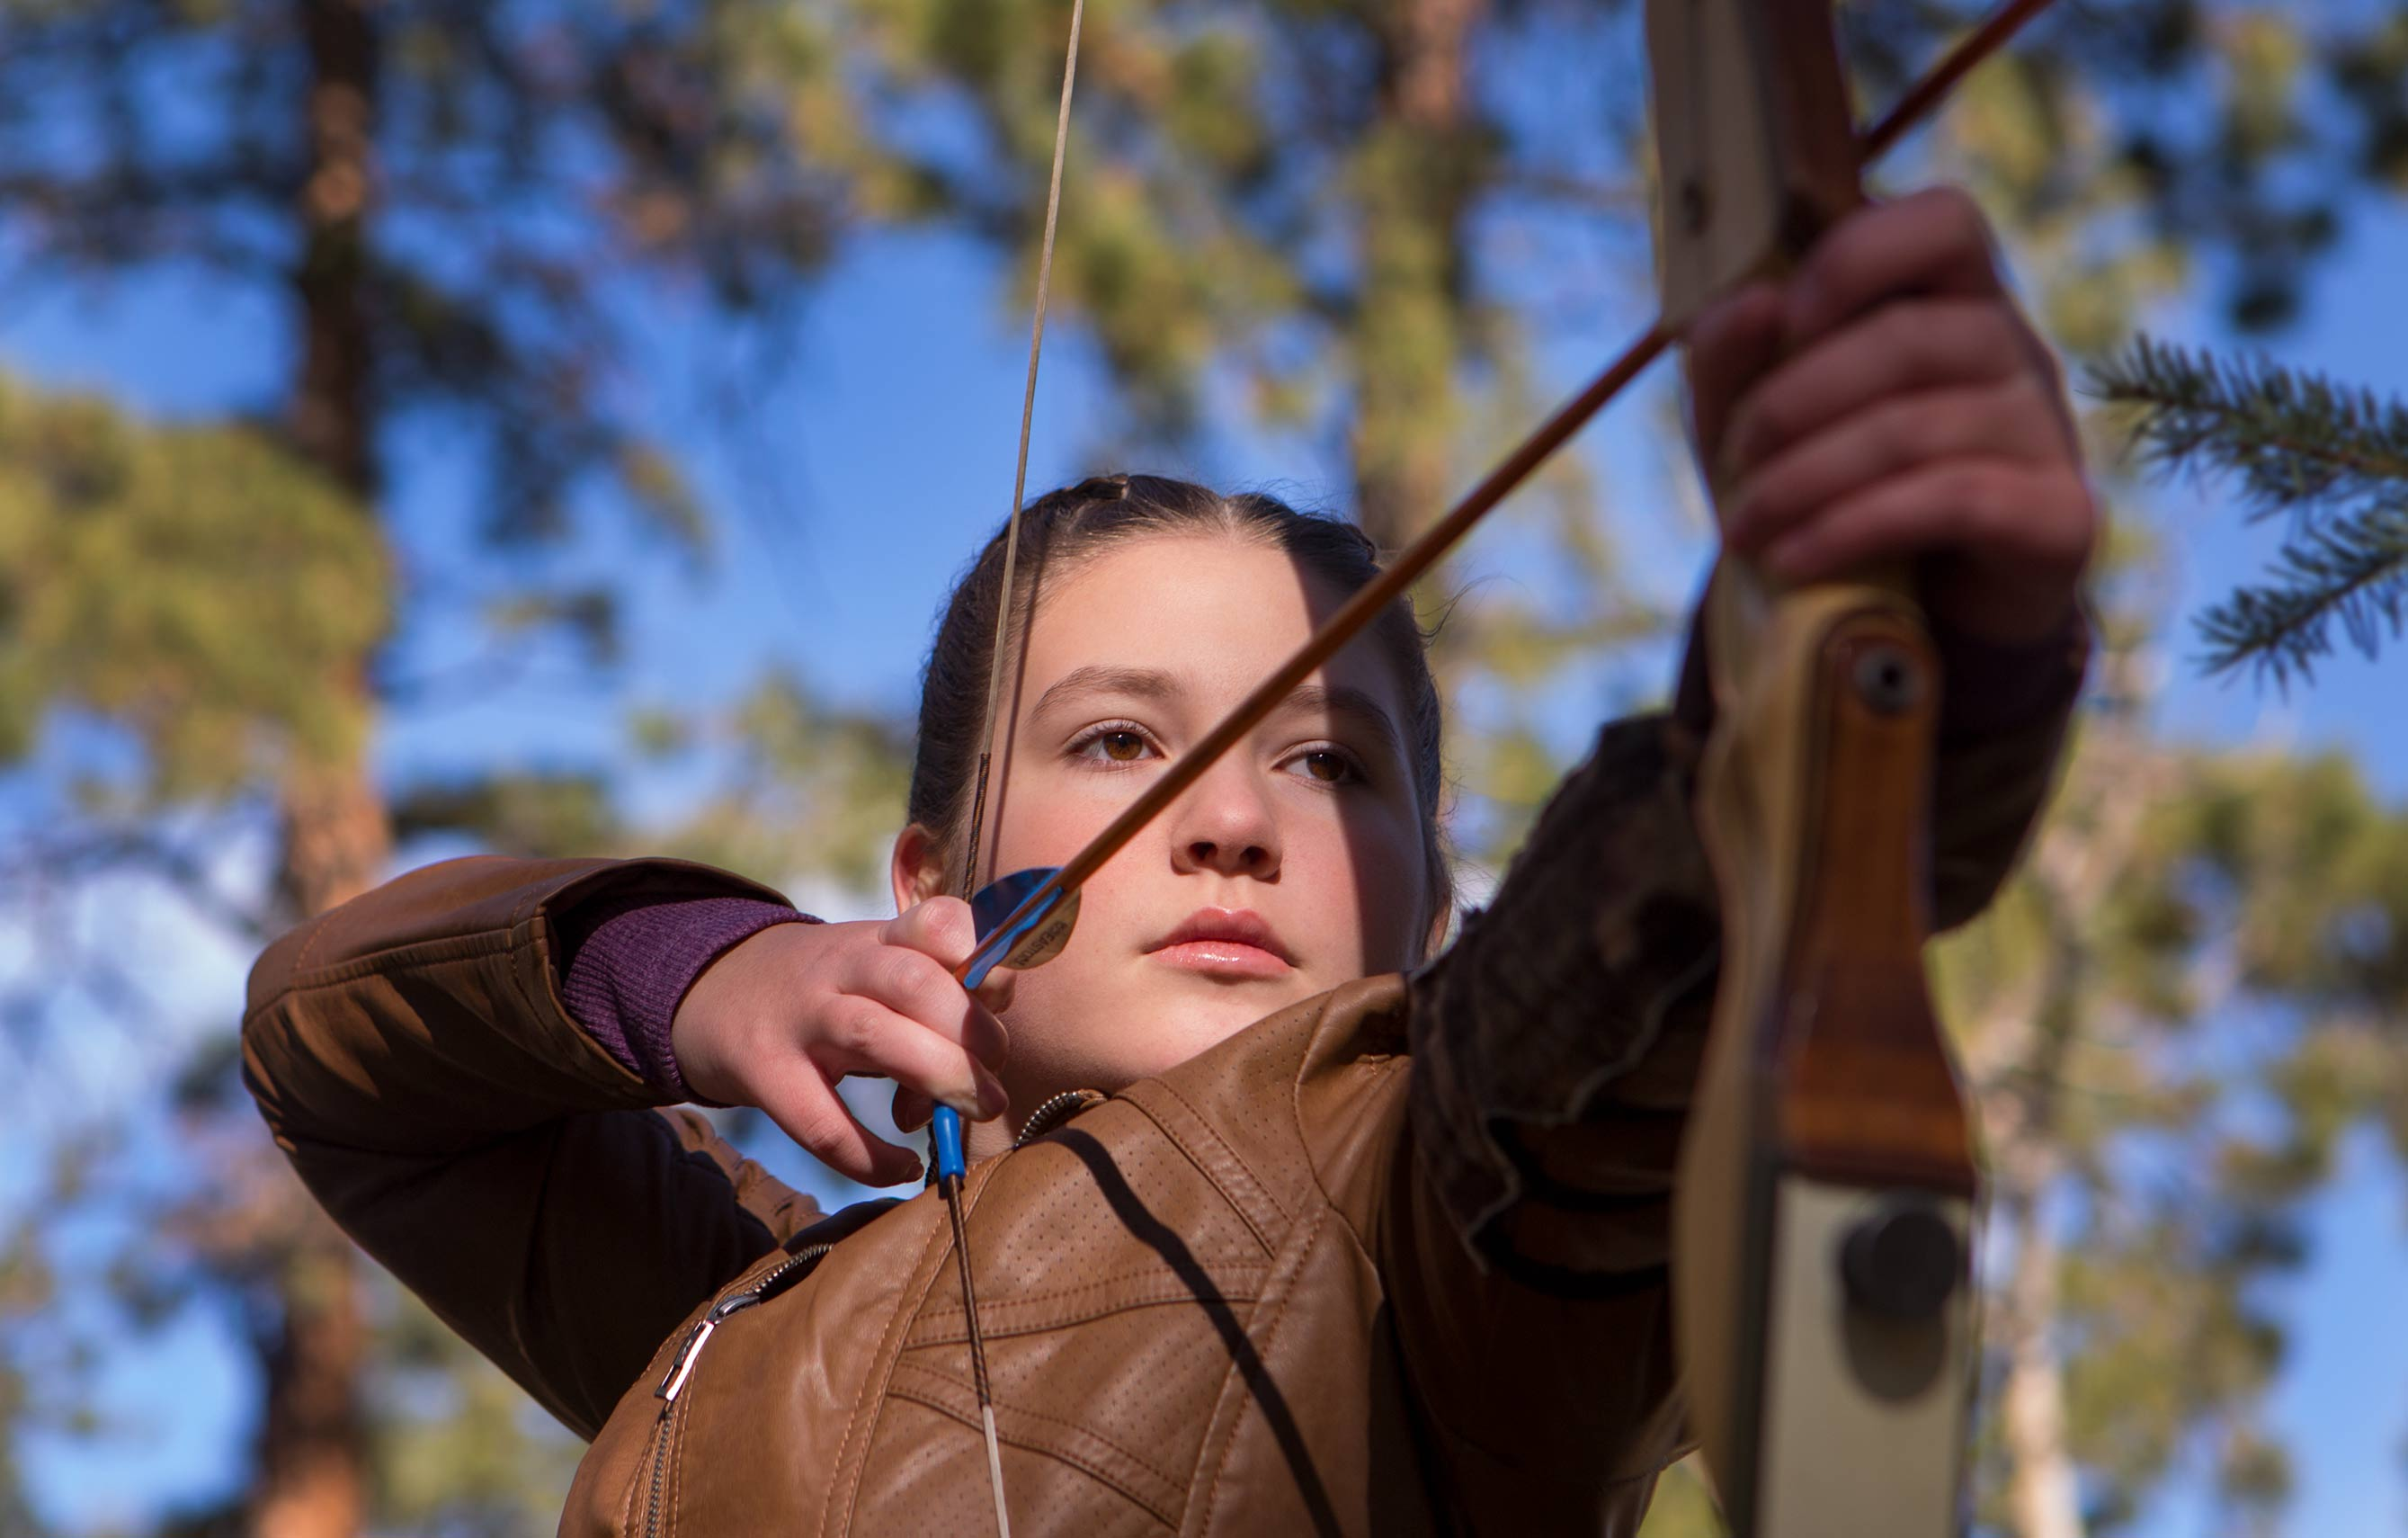 Archery_LBB_CO_1_